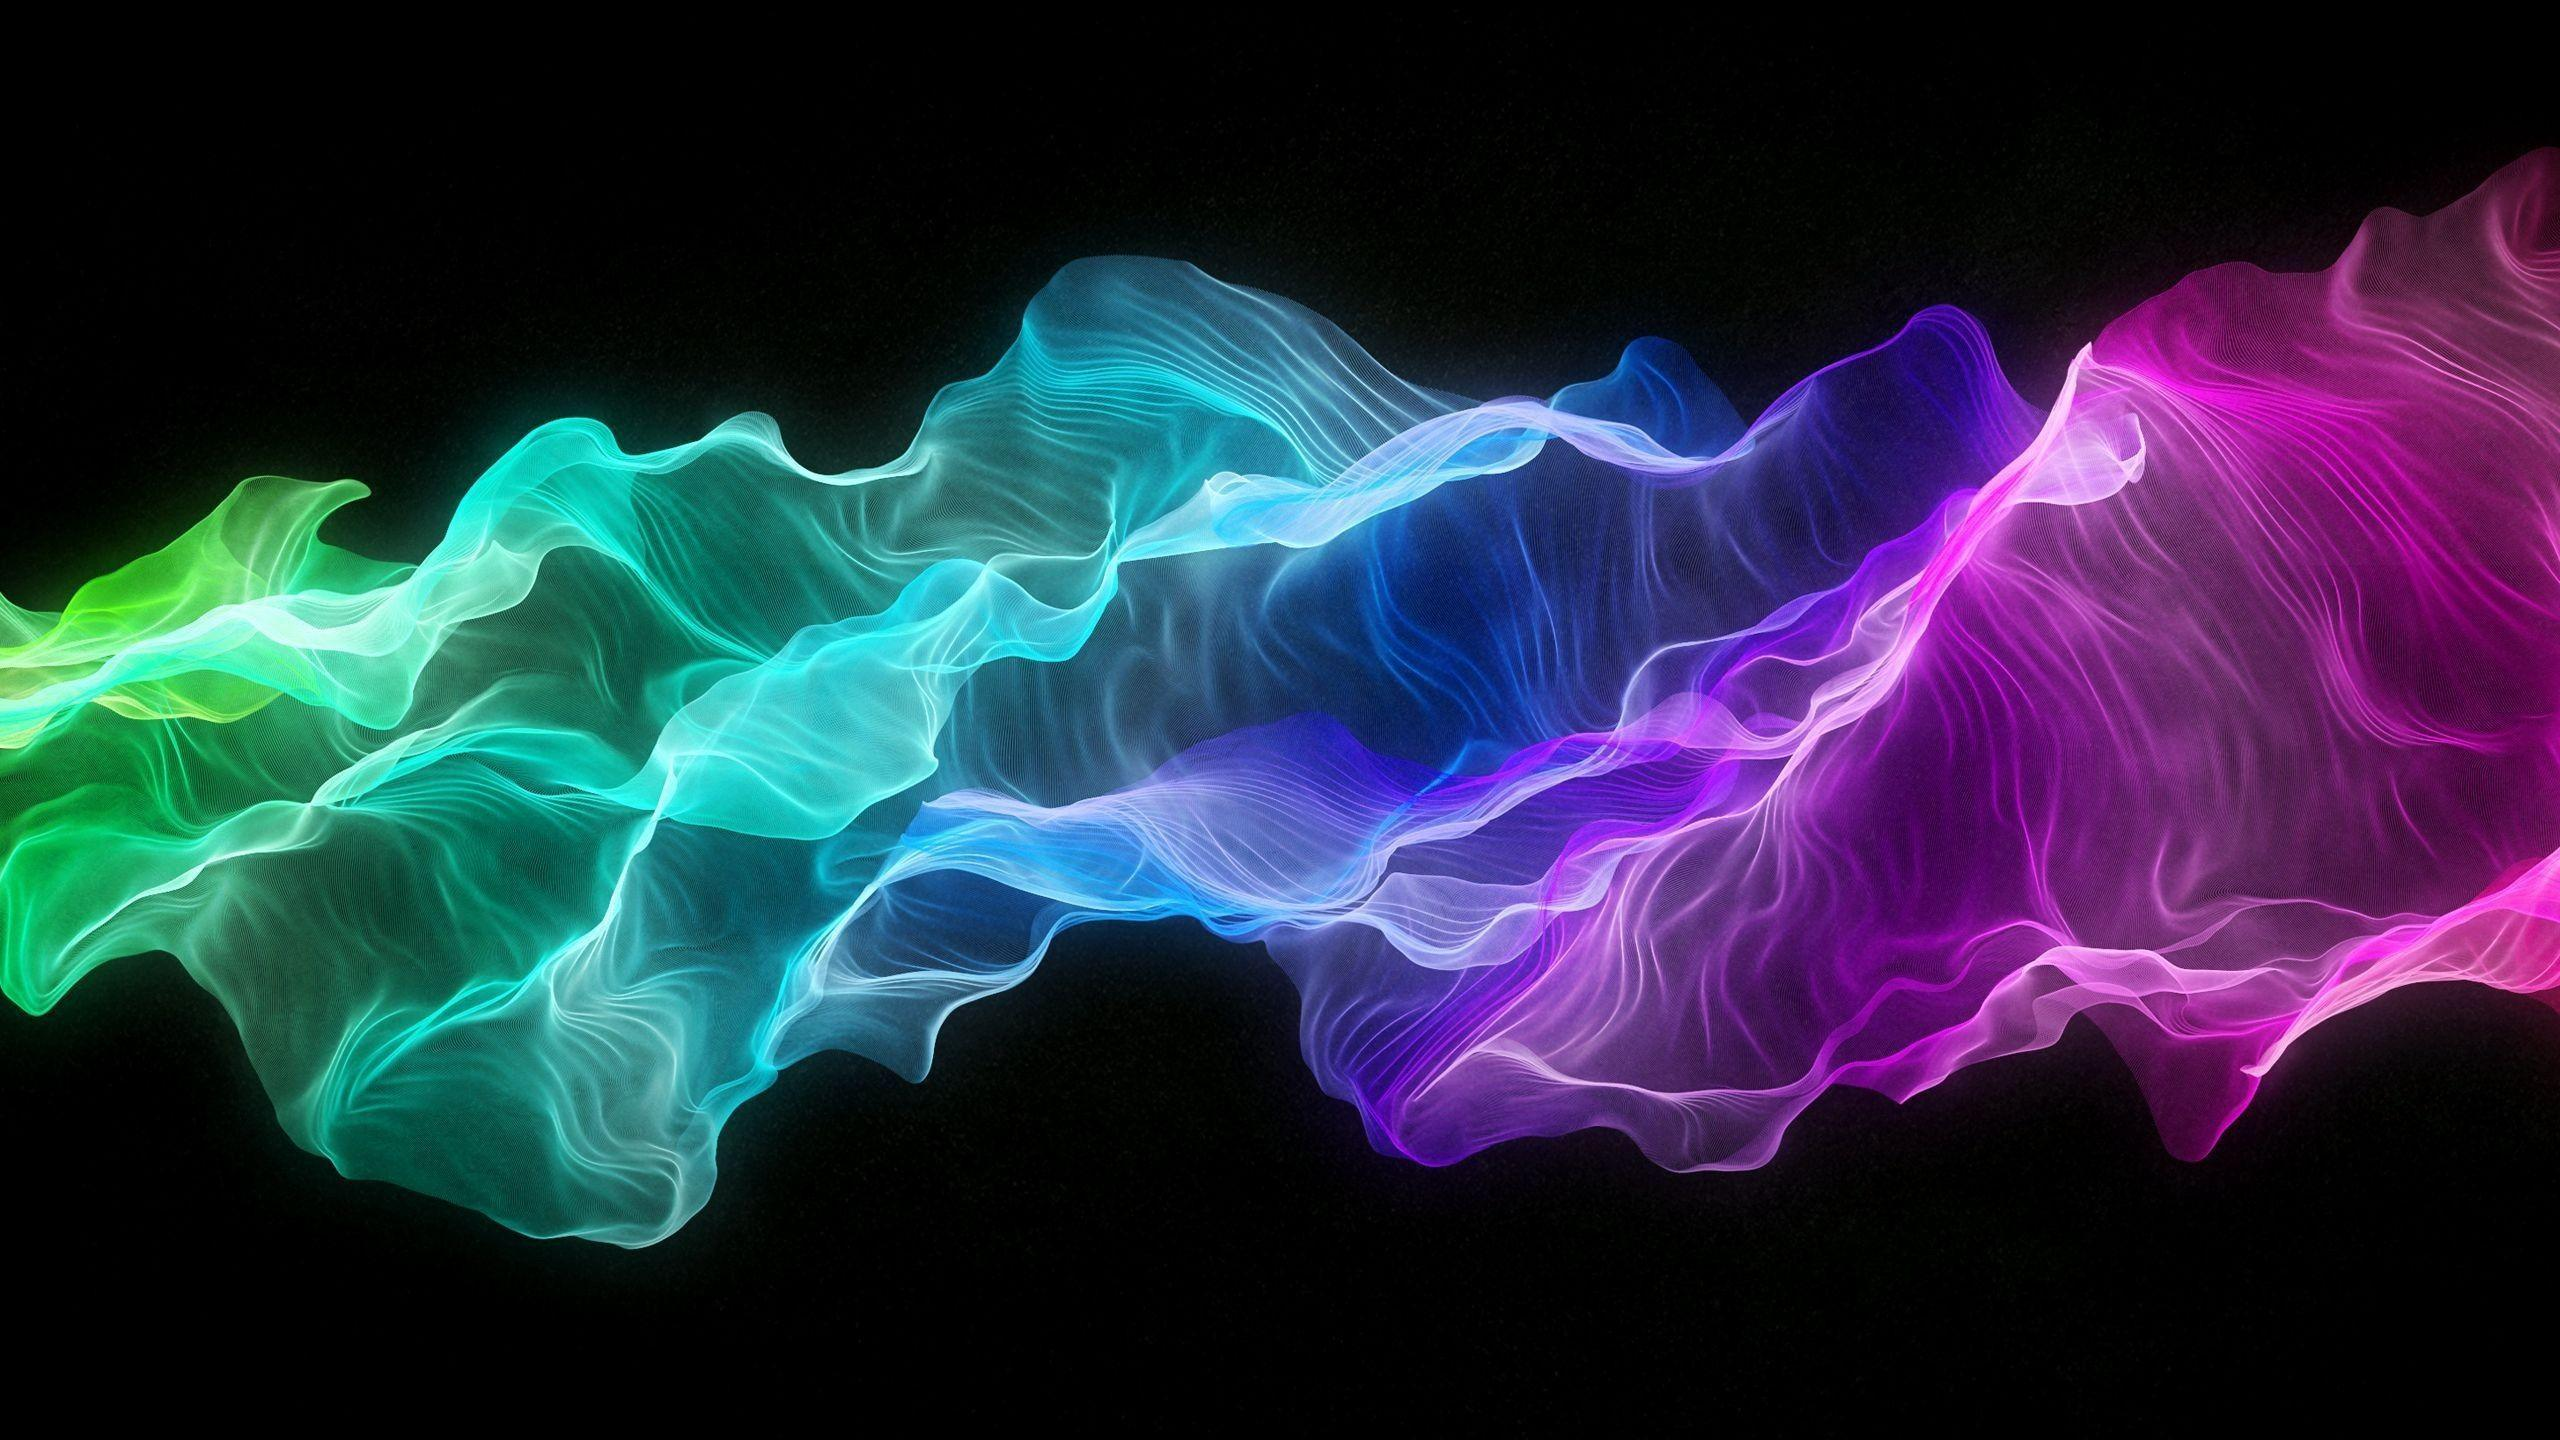 Colorful smoke backgrounds wallpaper cave - Epic wallpapers 2560x1440 ...